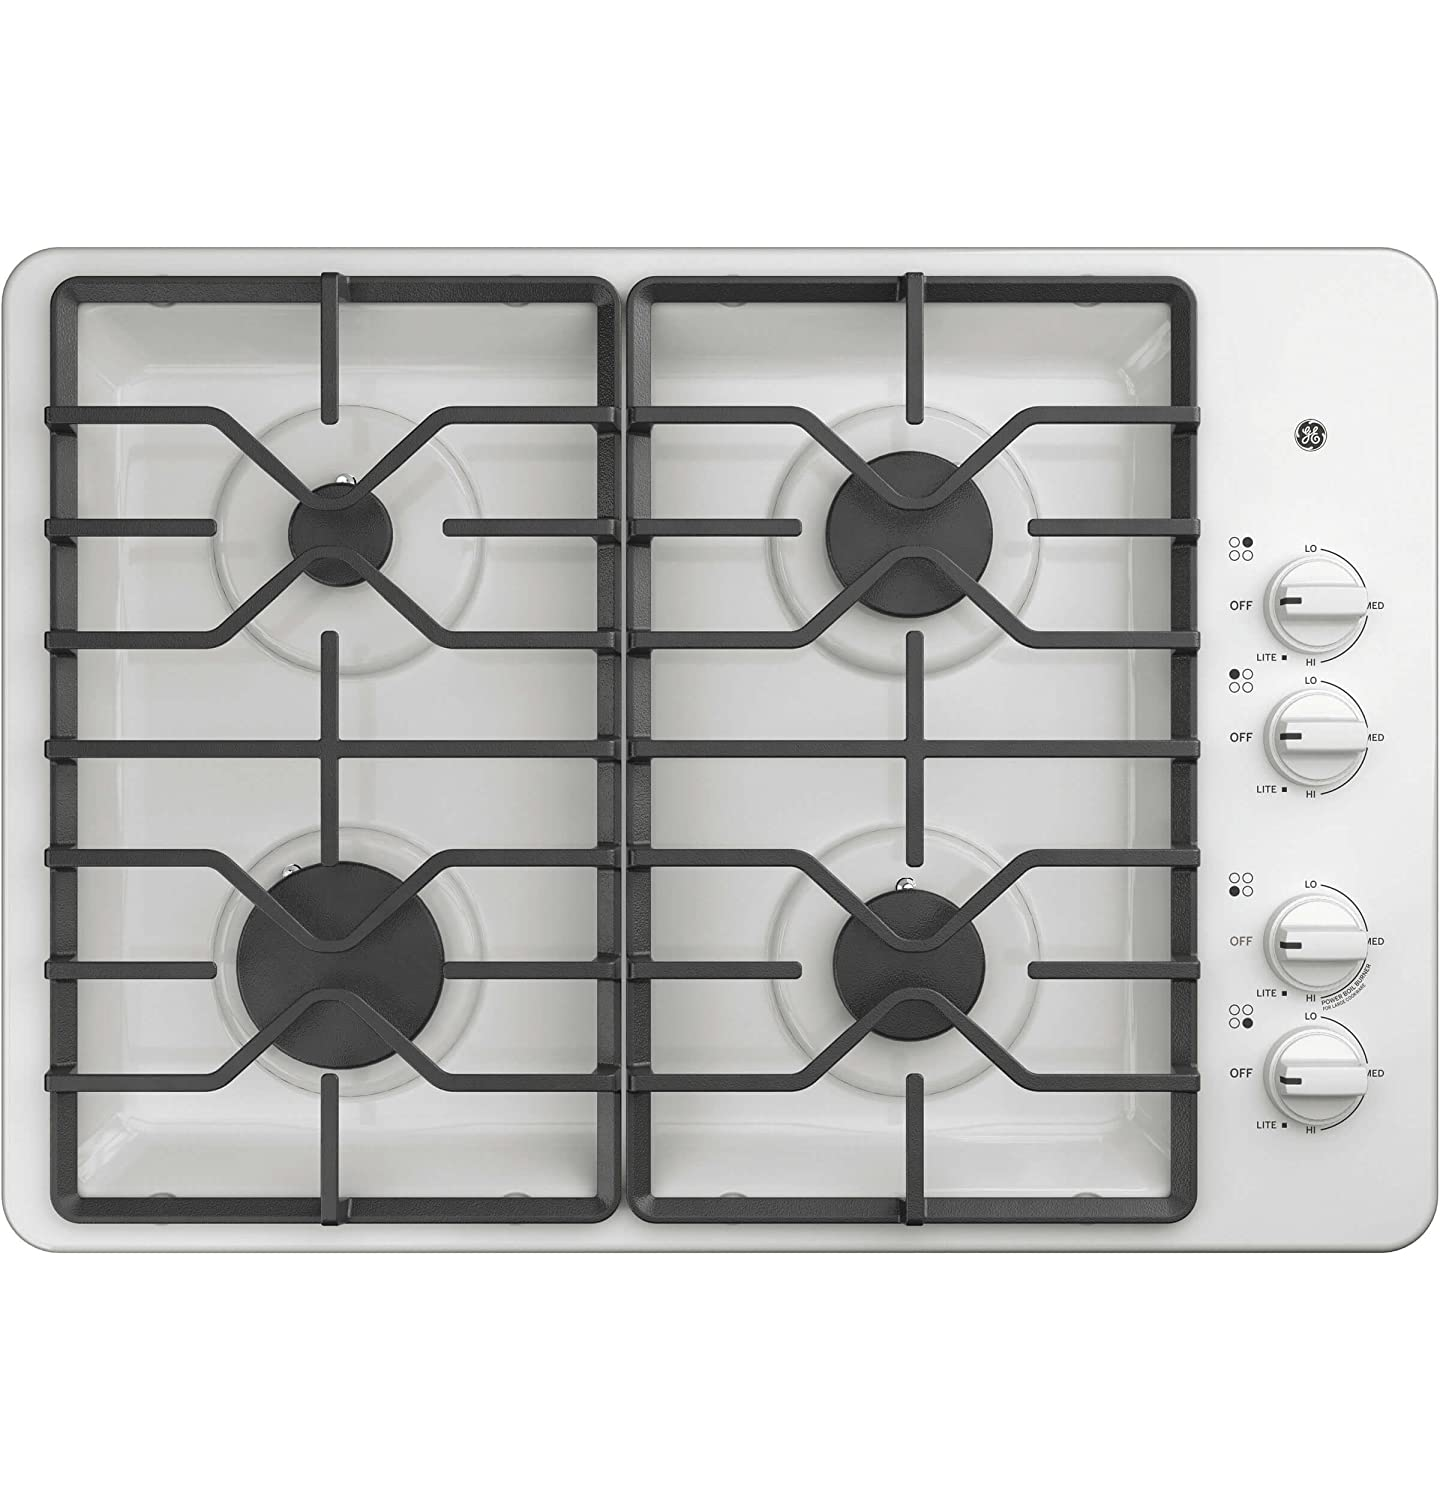 GE JGP3030DLWW 30 Inch Natural Gas Sealed Burner Style Cooktop with 4 Burners, ADA Compliant, in White G.E.